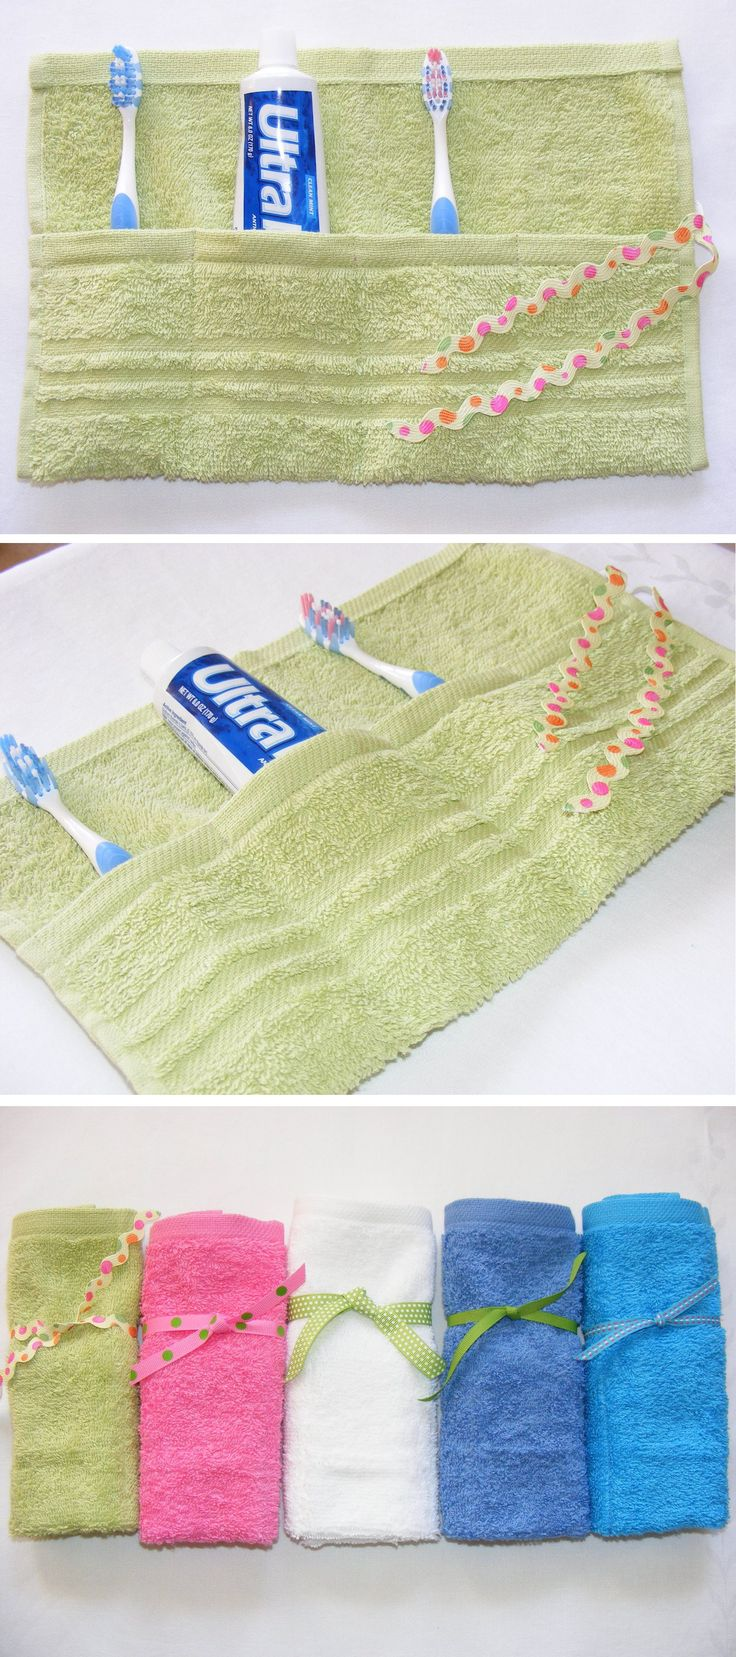 Keep the mess in the towel then throw the towel in the laundry when you get home from your trip.--totally making this!!